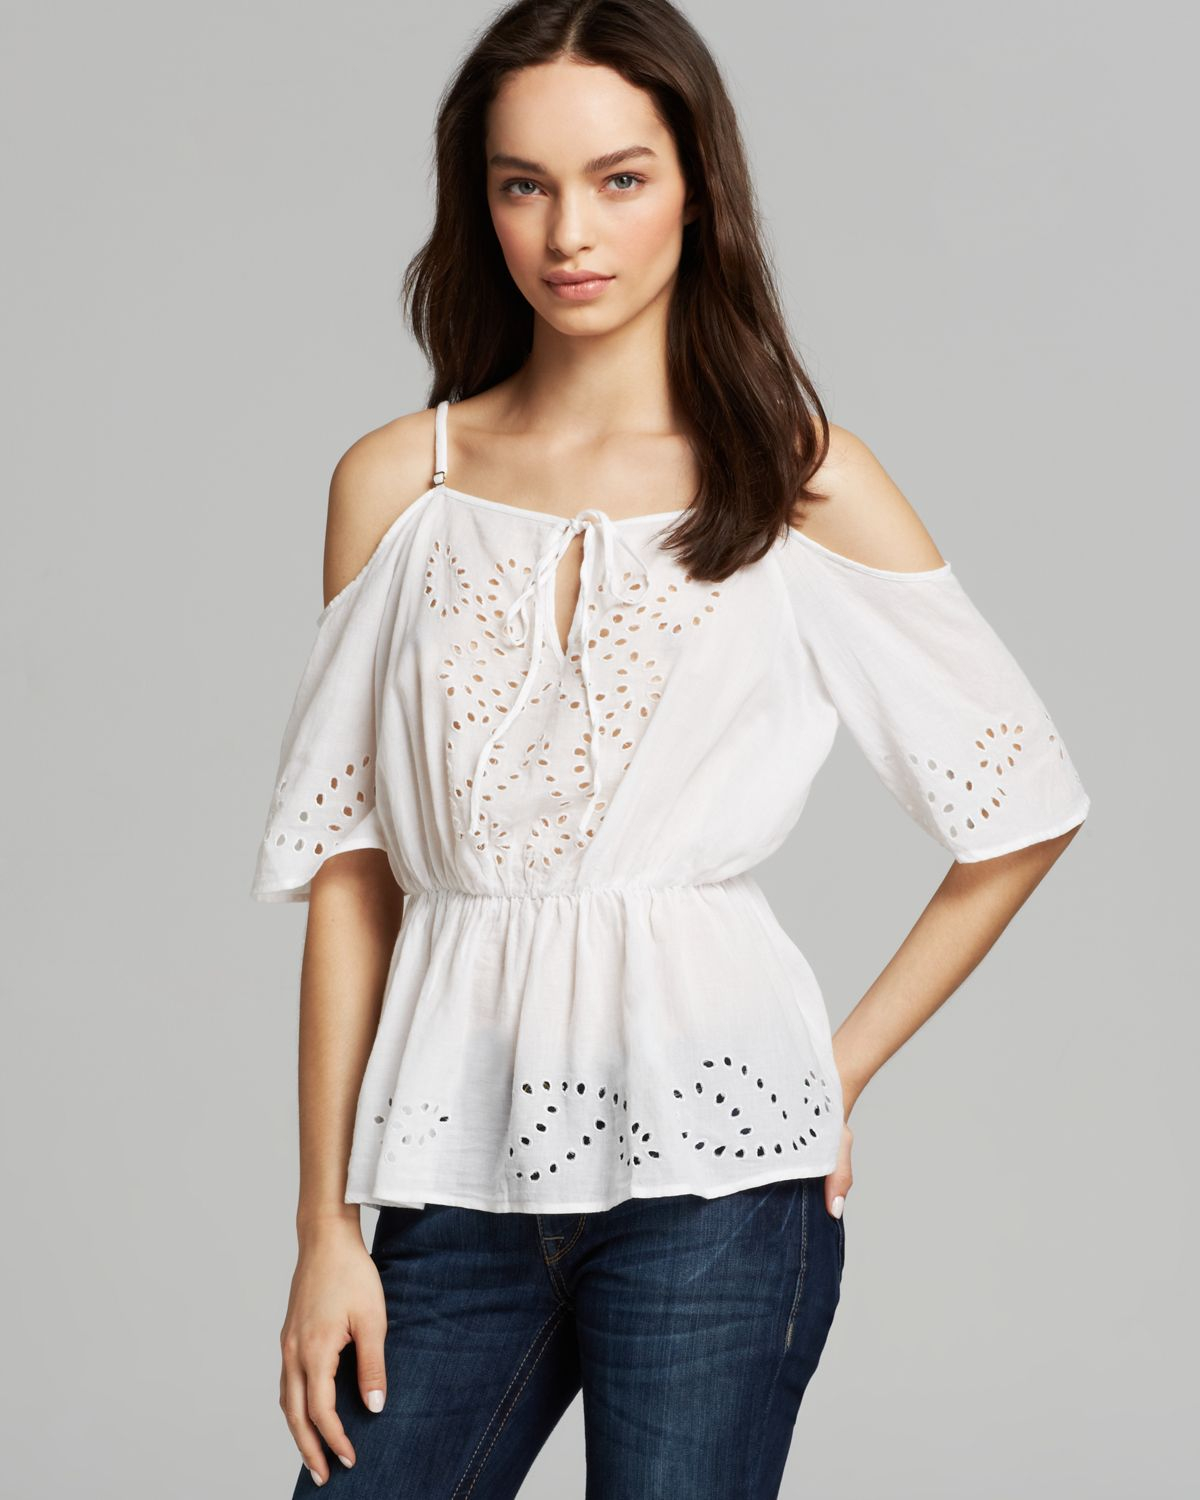 Guess Top Samantha Eyelet In White (True White)